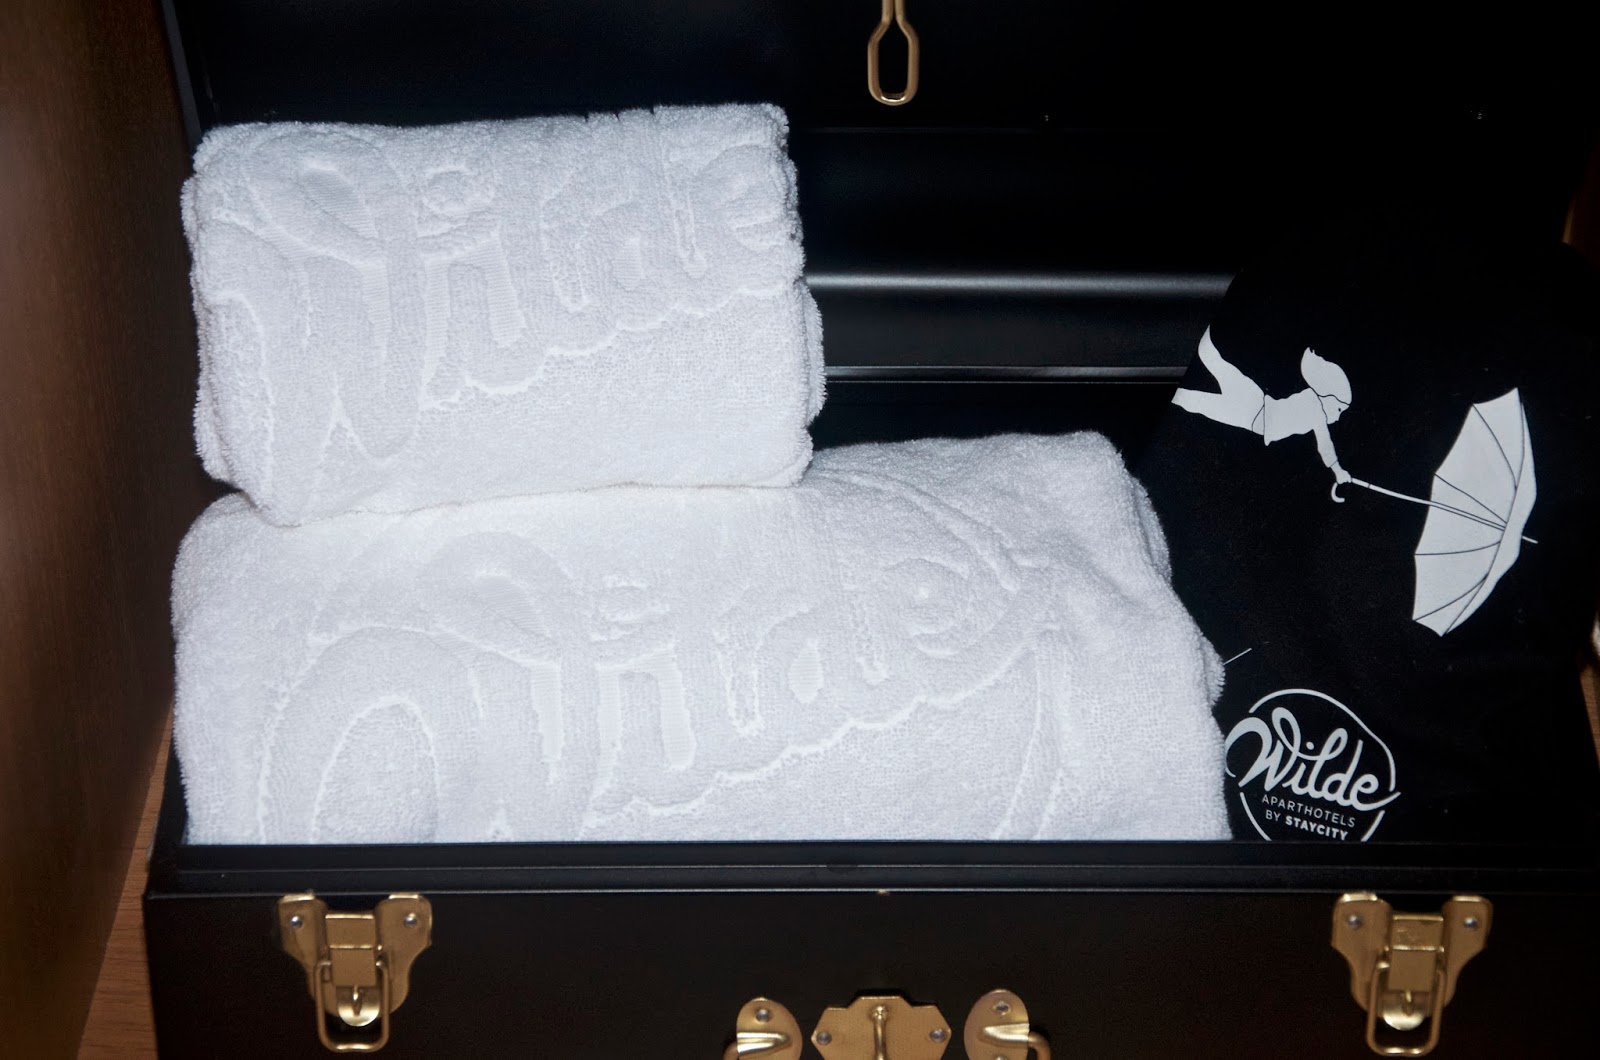 Wilde Aparthotels by Staycity towels in trunk